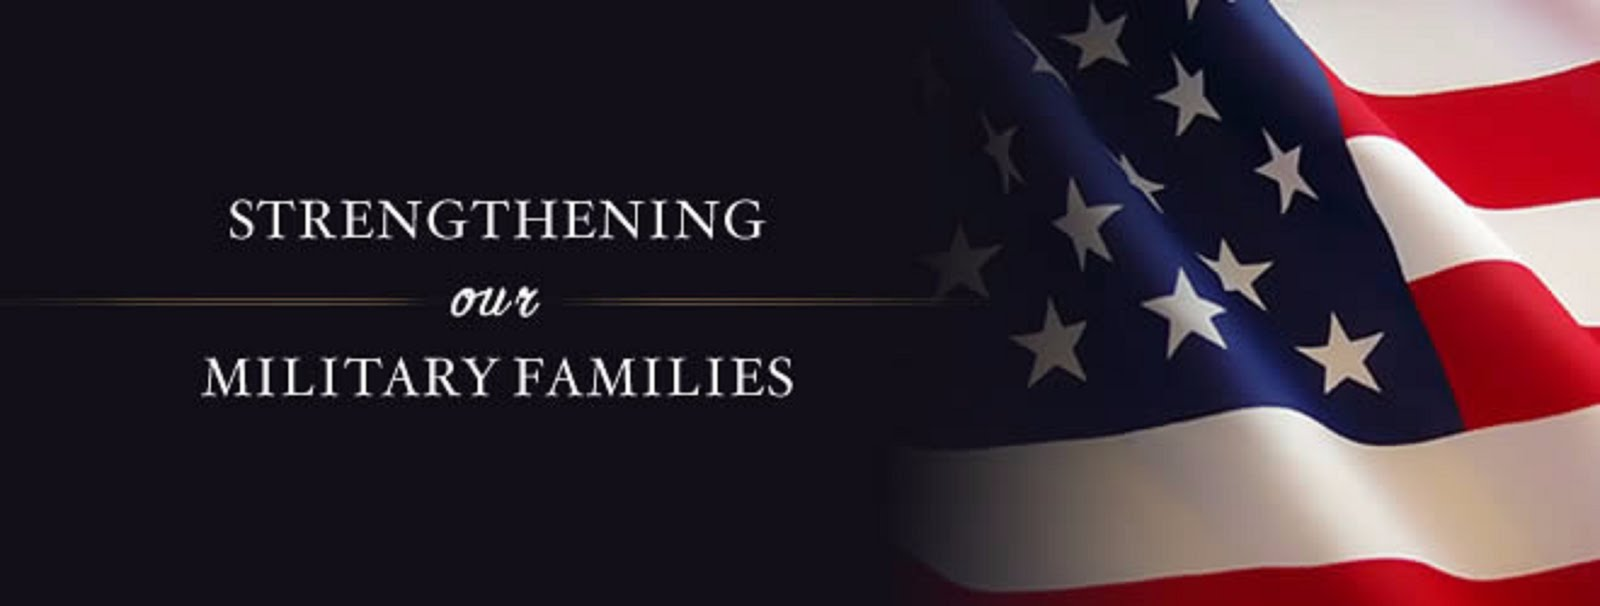 STRENGTHENING OUR MILITARY FAMILIES